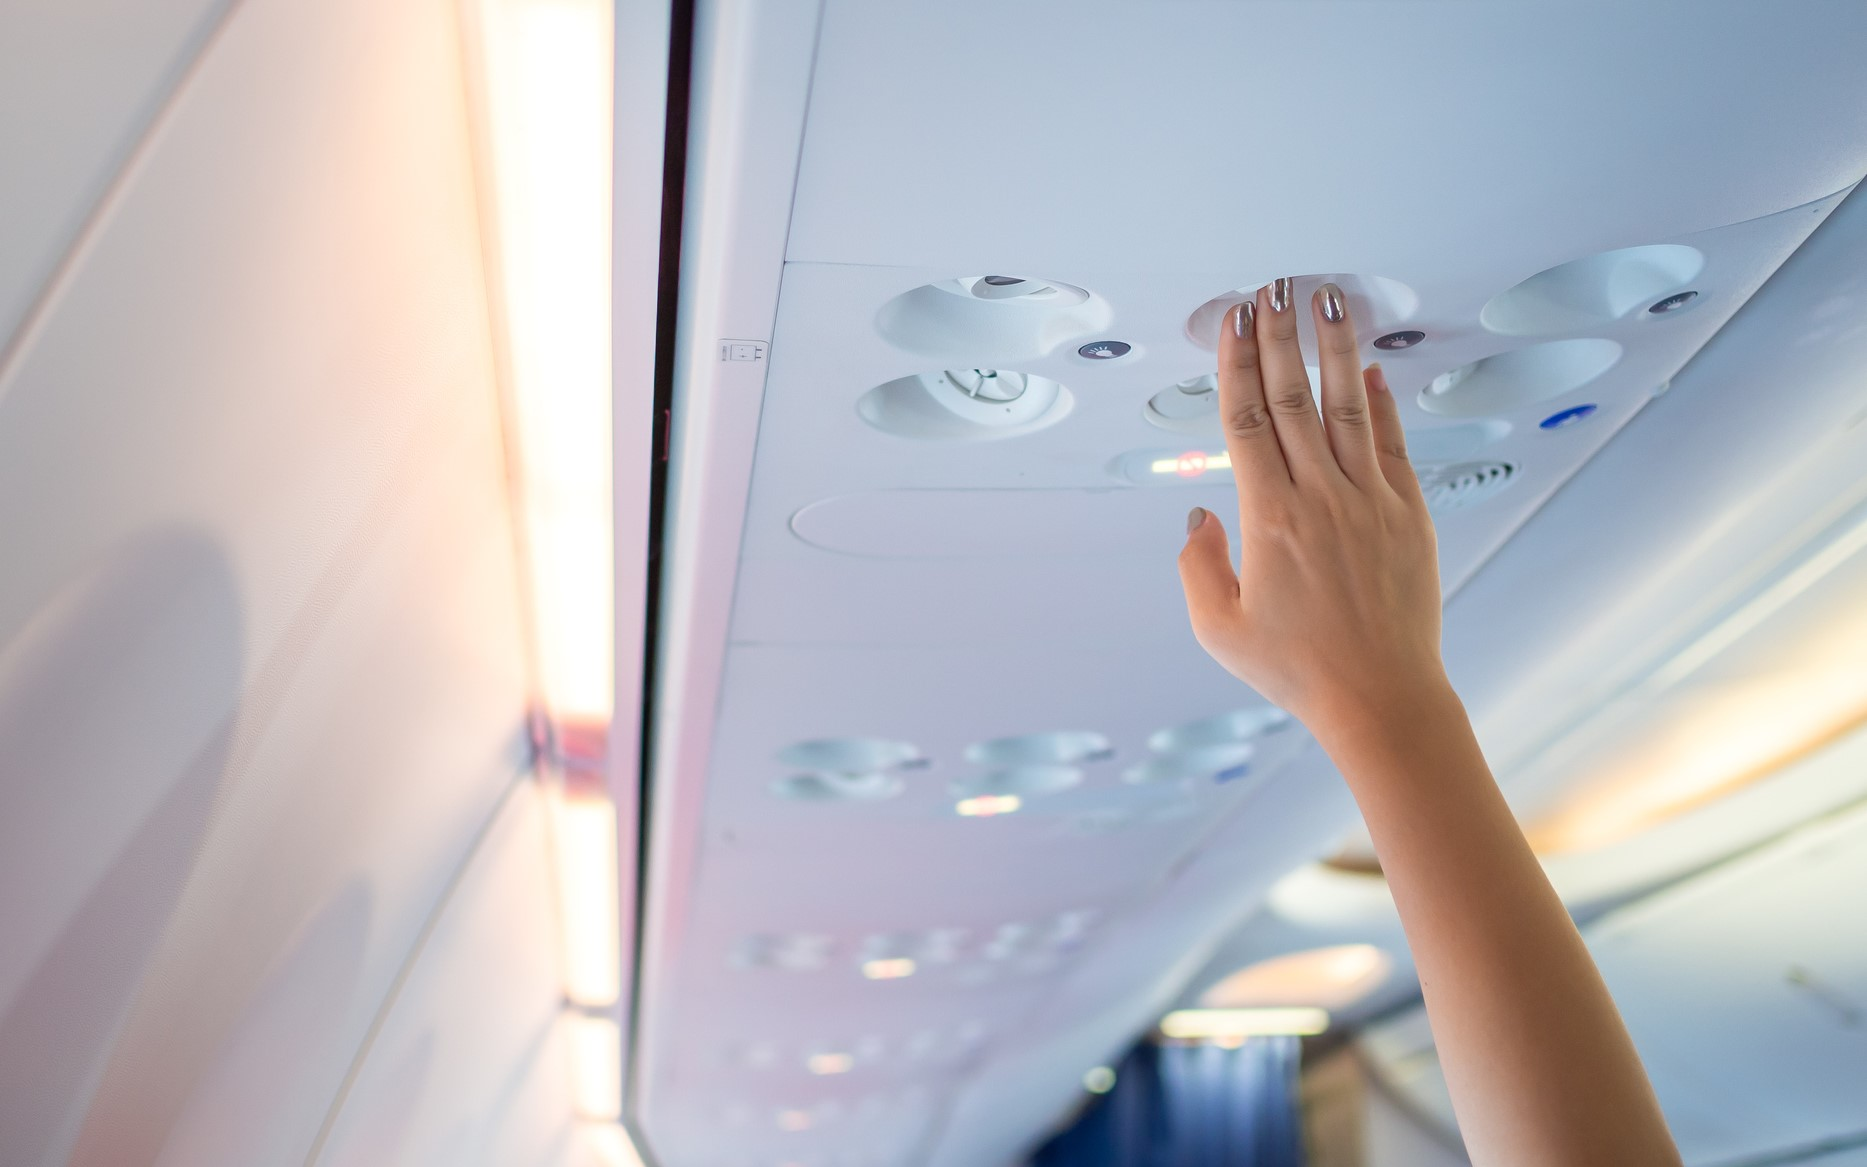 Now in Airbus airplanes the air protects against virus